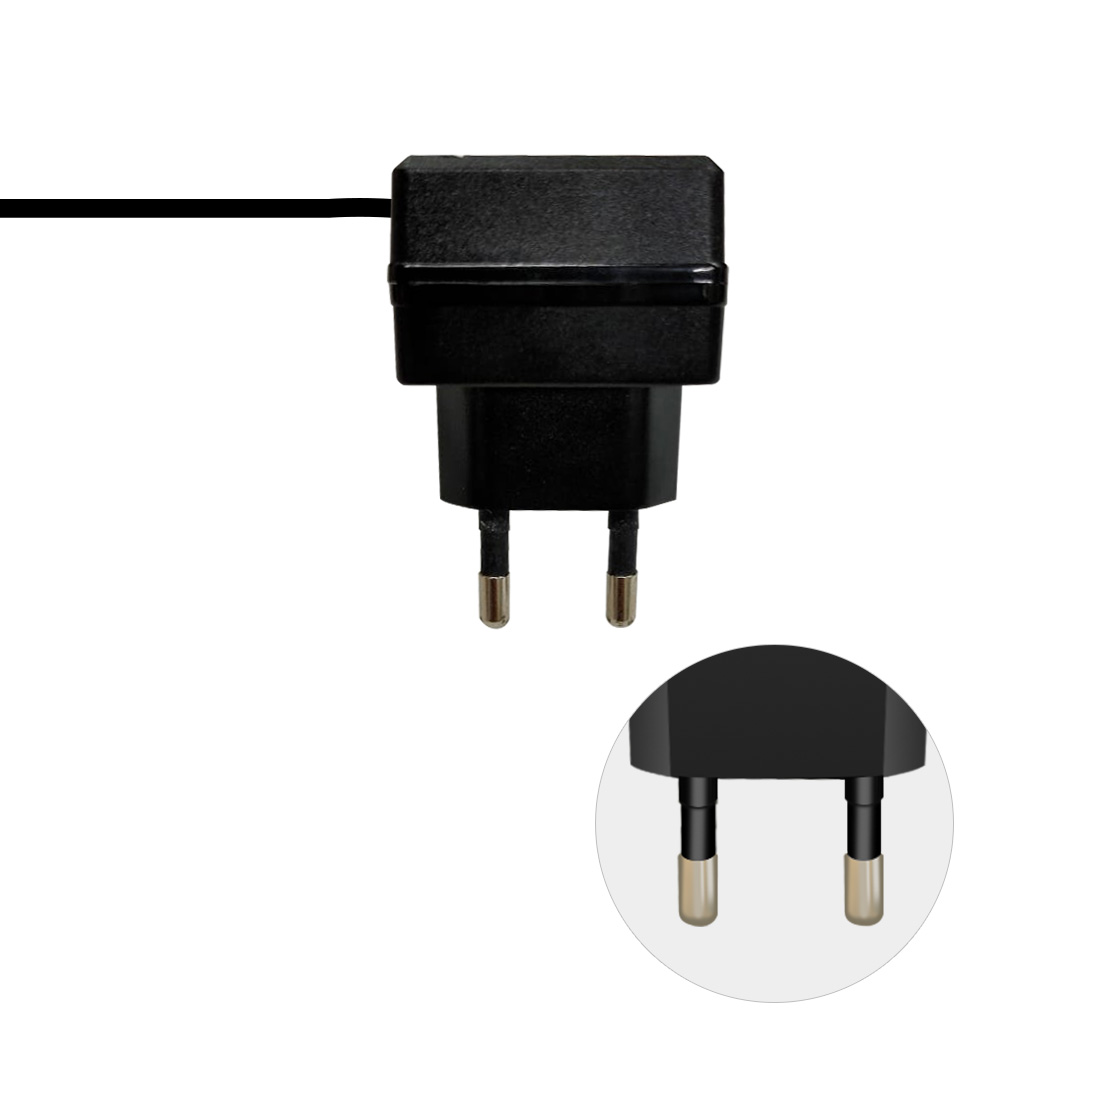 TB1410 Power Adapter